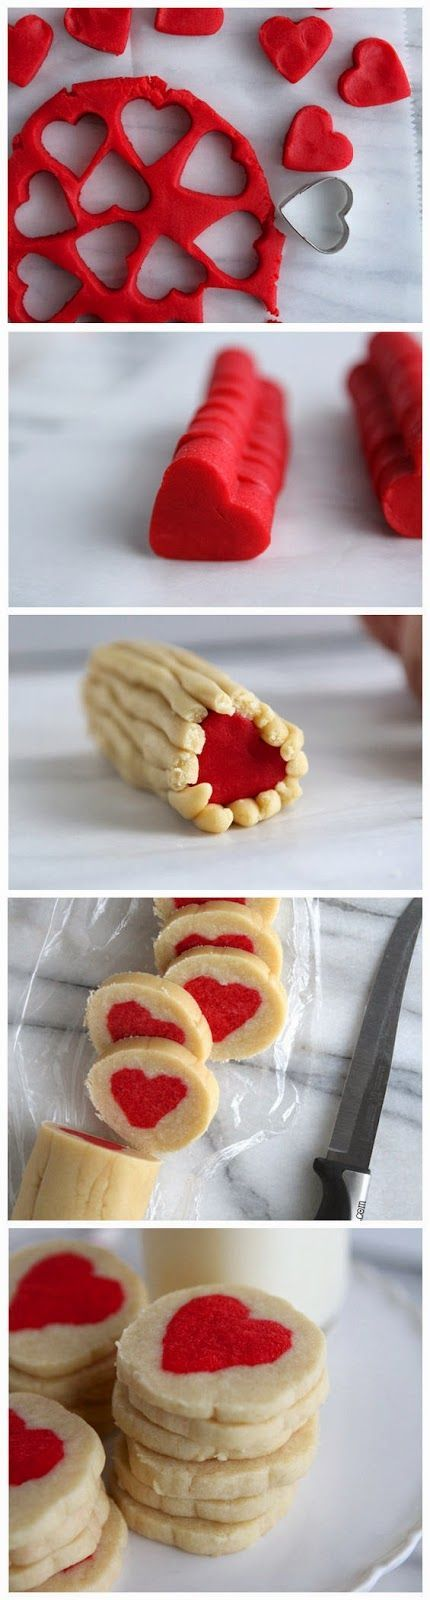 Slice n' Bake Heart Cookies ~ Method works for any shape...star for 4th, bell for Christmas, pumpkin for Halloween